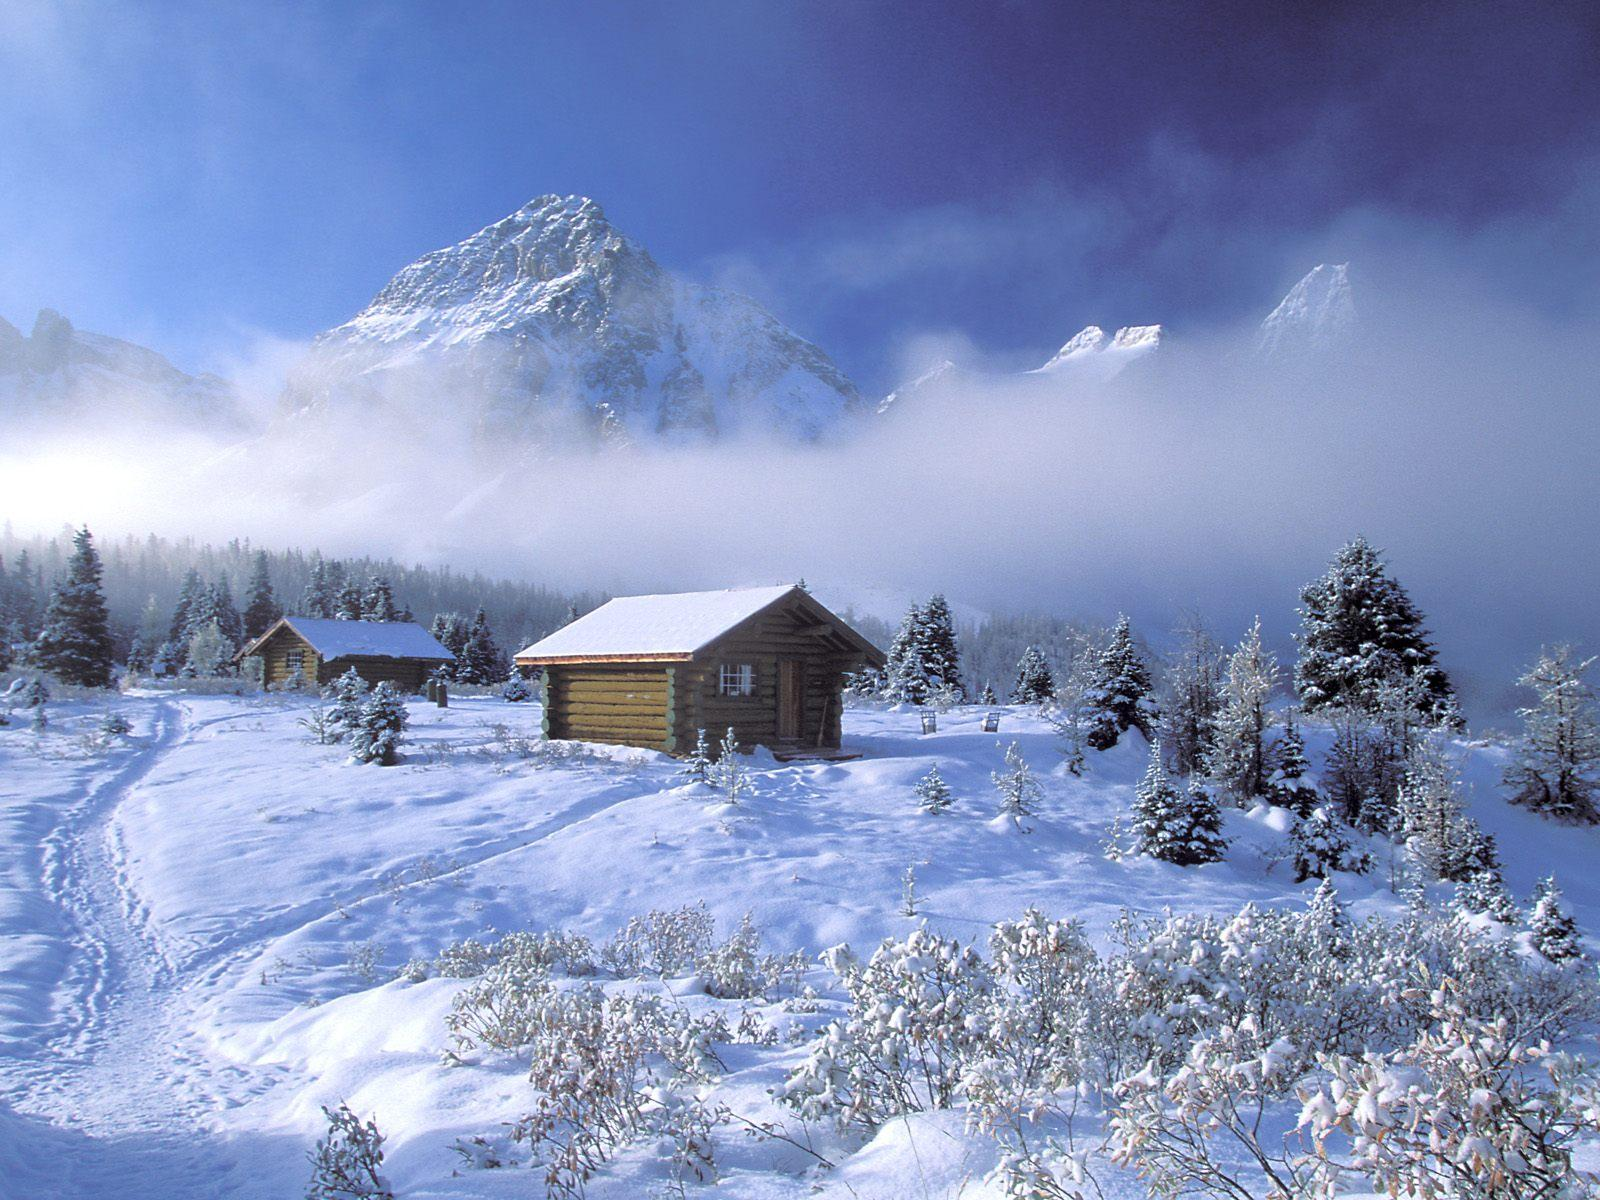 Winter Scenes for Desktop Wallpapers